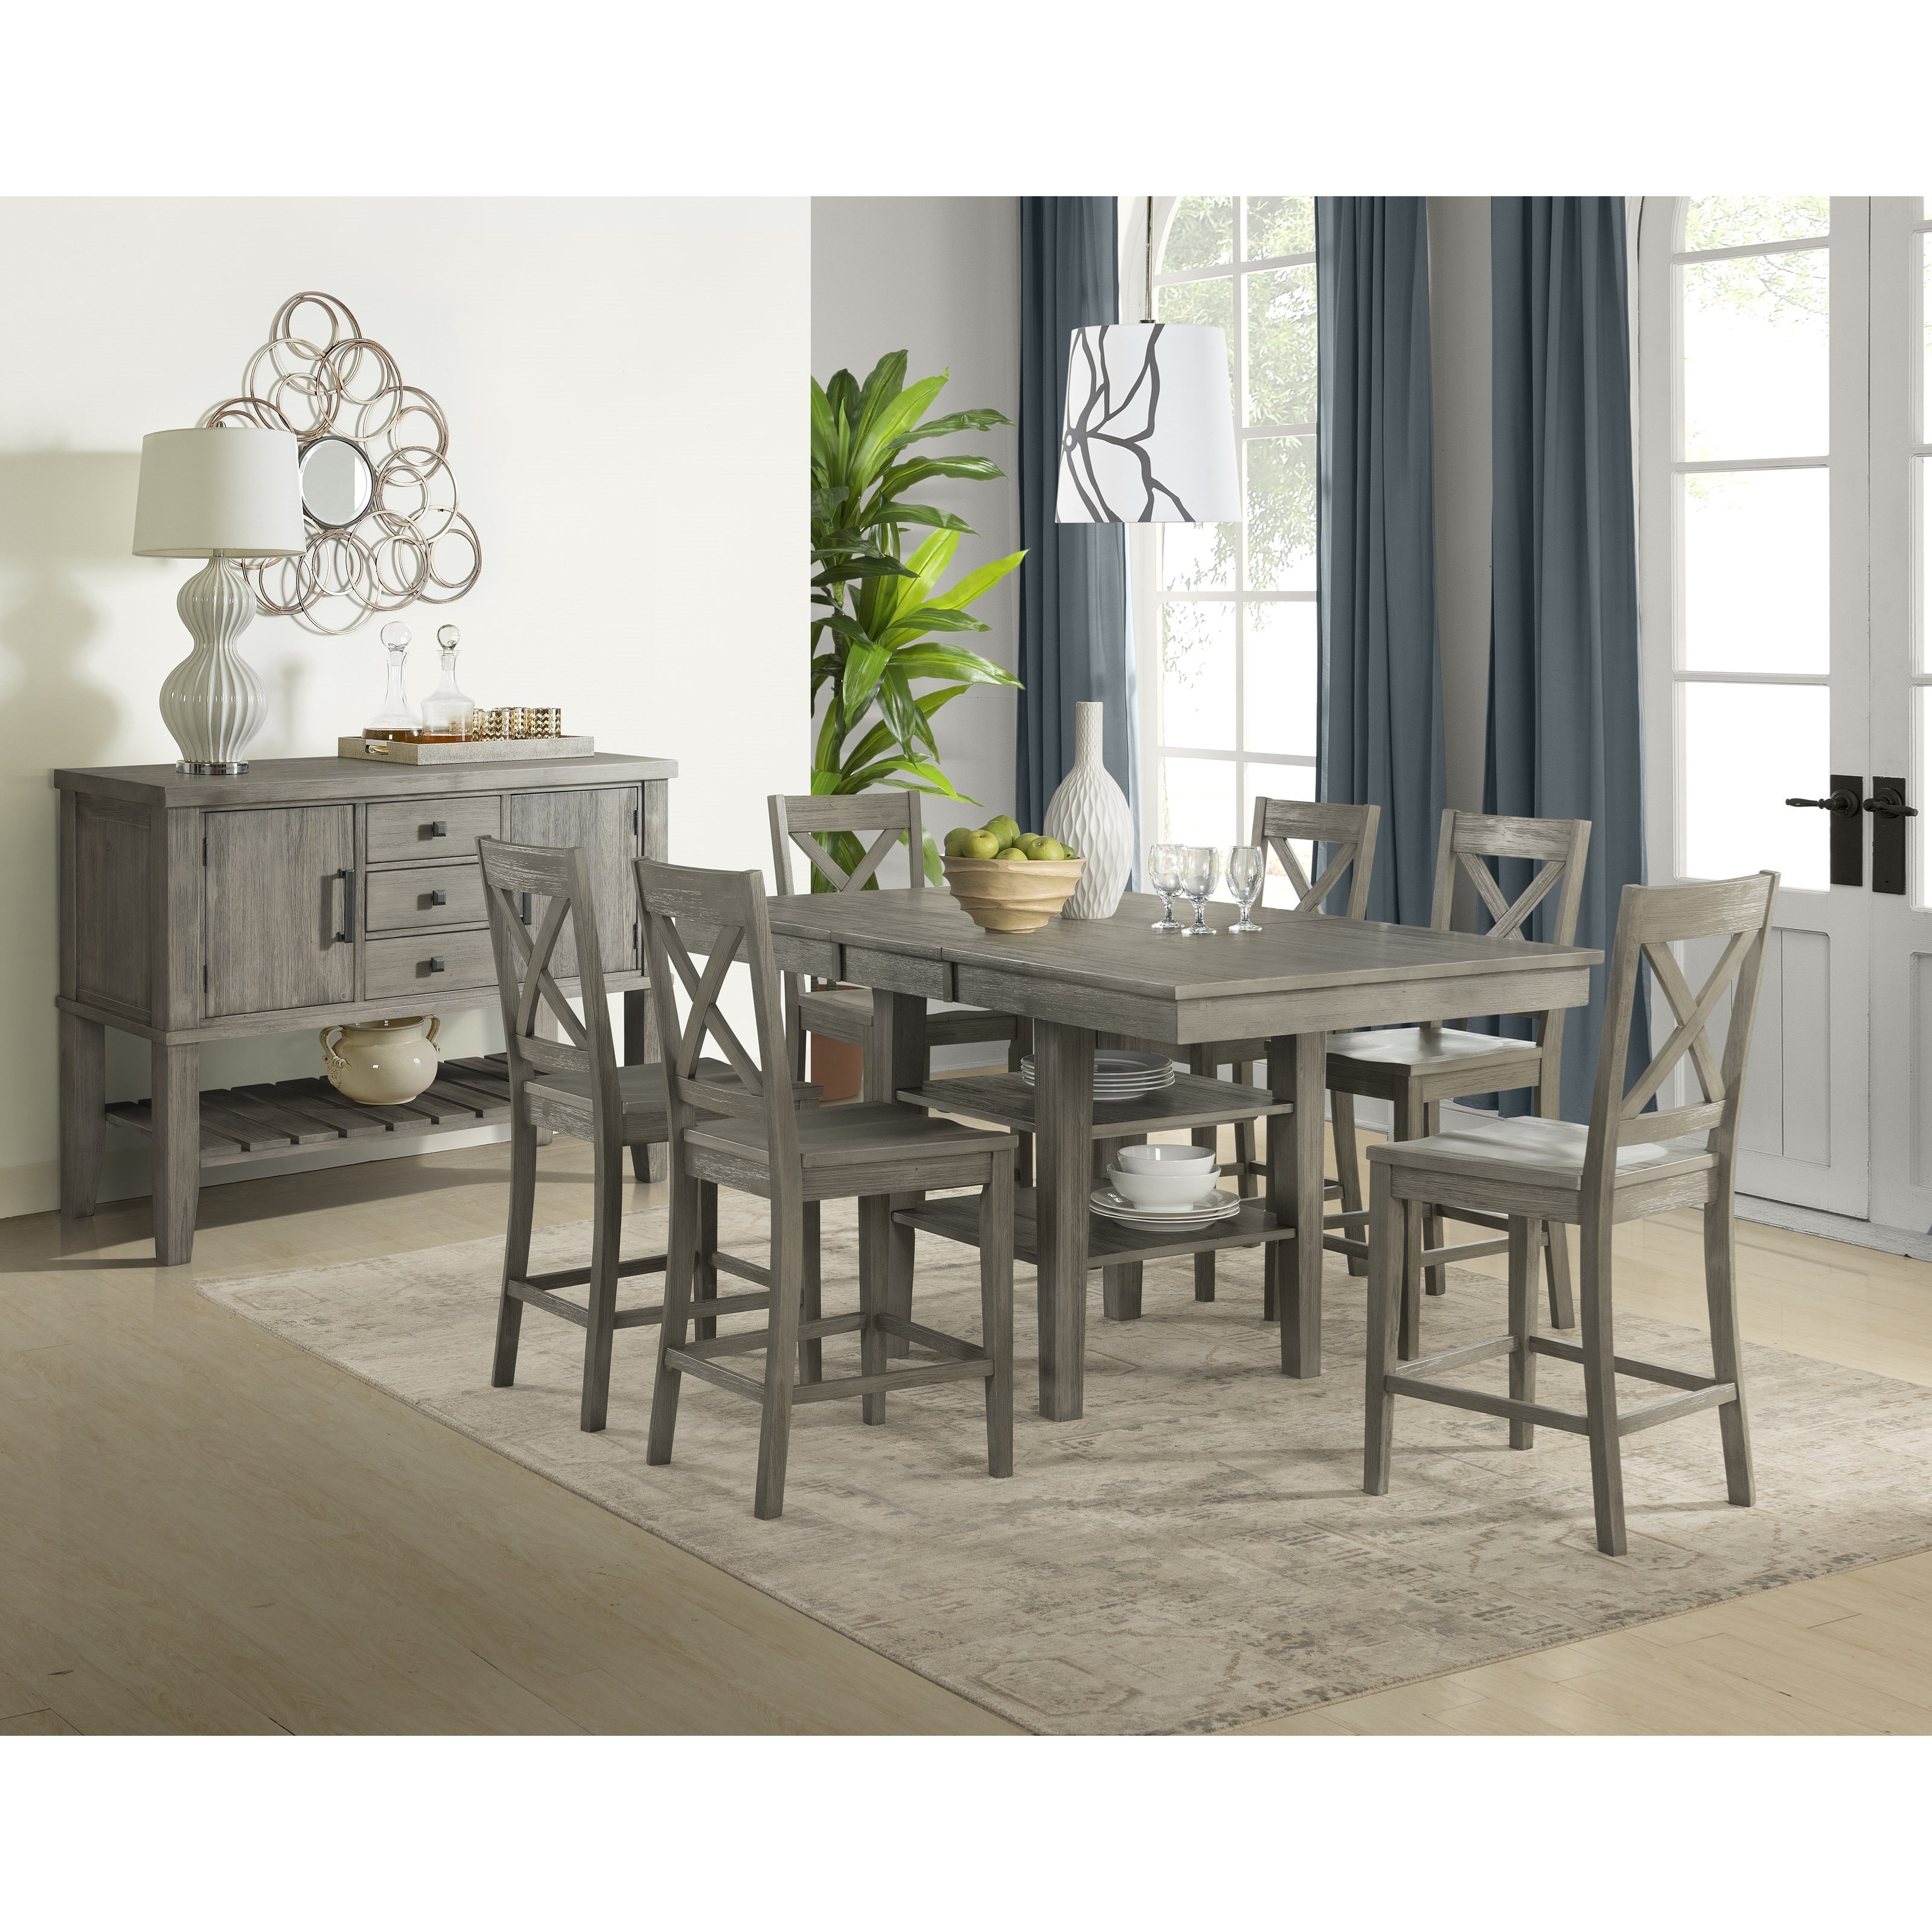 aamerica huron casual dining room group fashion. Black Bedroom Furniture Sets. Home Design Ideas